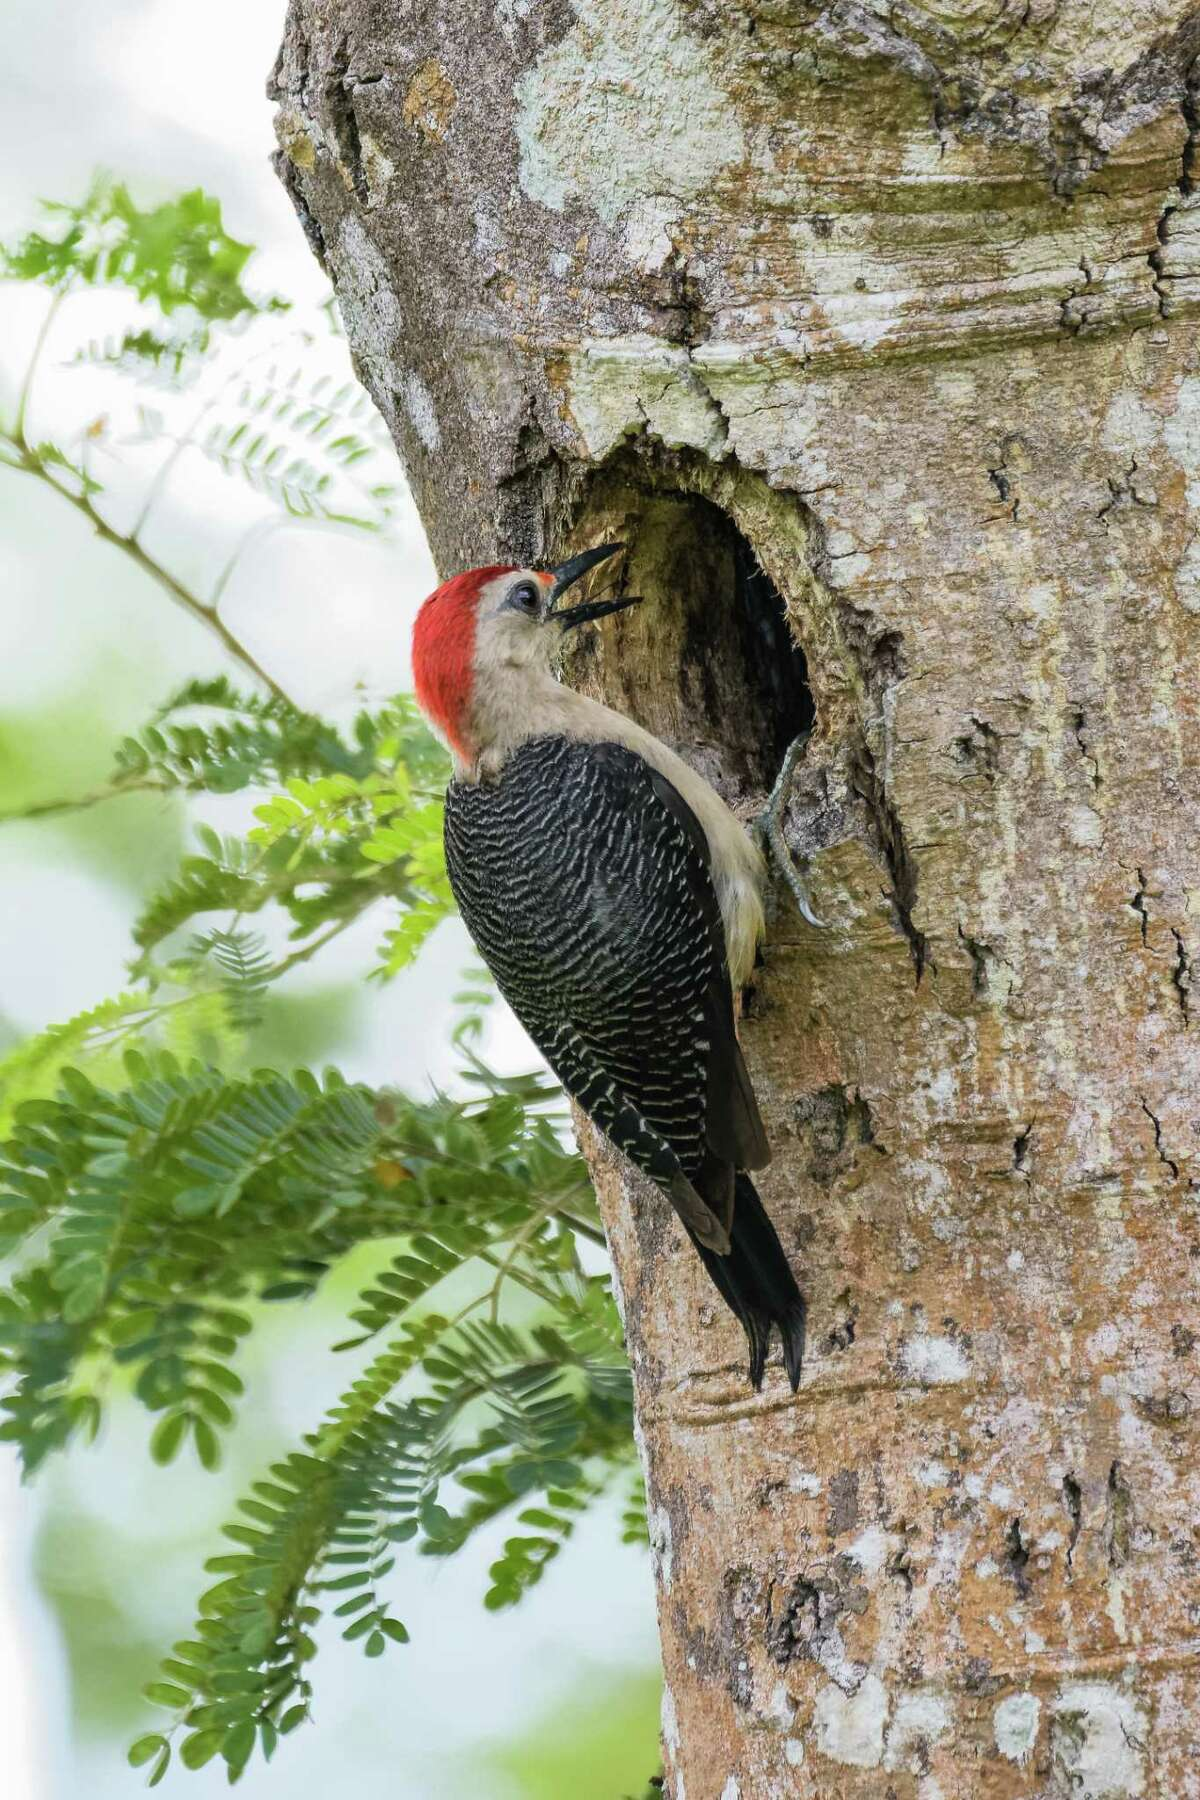 Woodpeckers nest in dead trees and even utility poles, then tend to move on to the next tree or pole to peck. Squirrels, birds and other critters then move in.